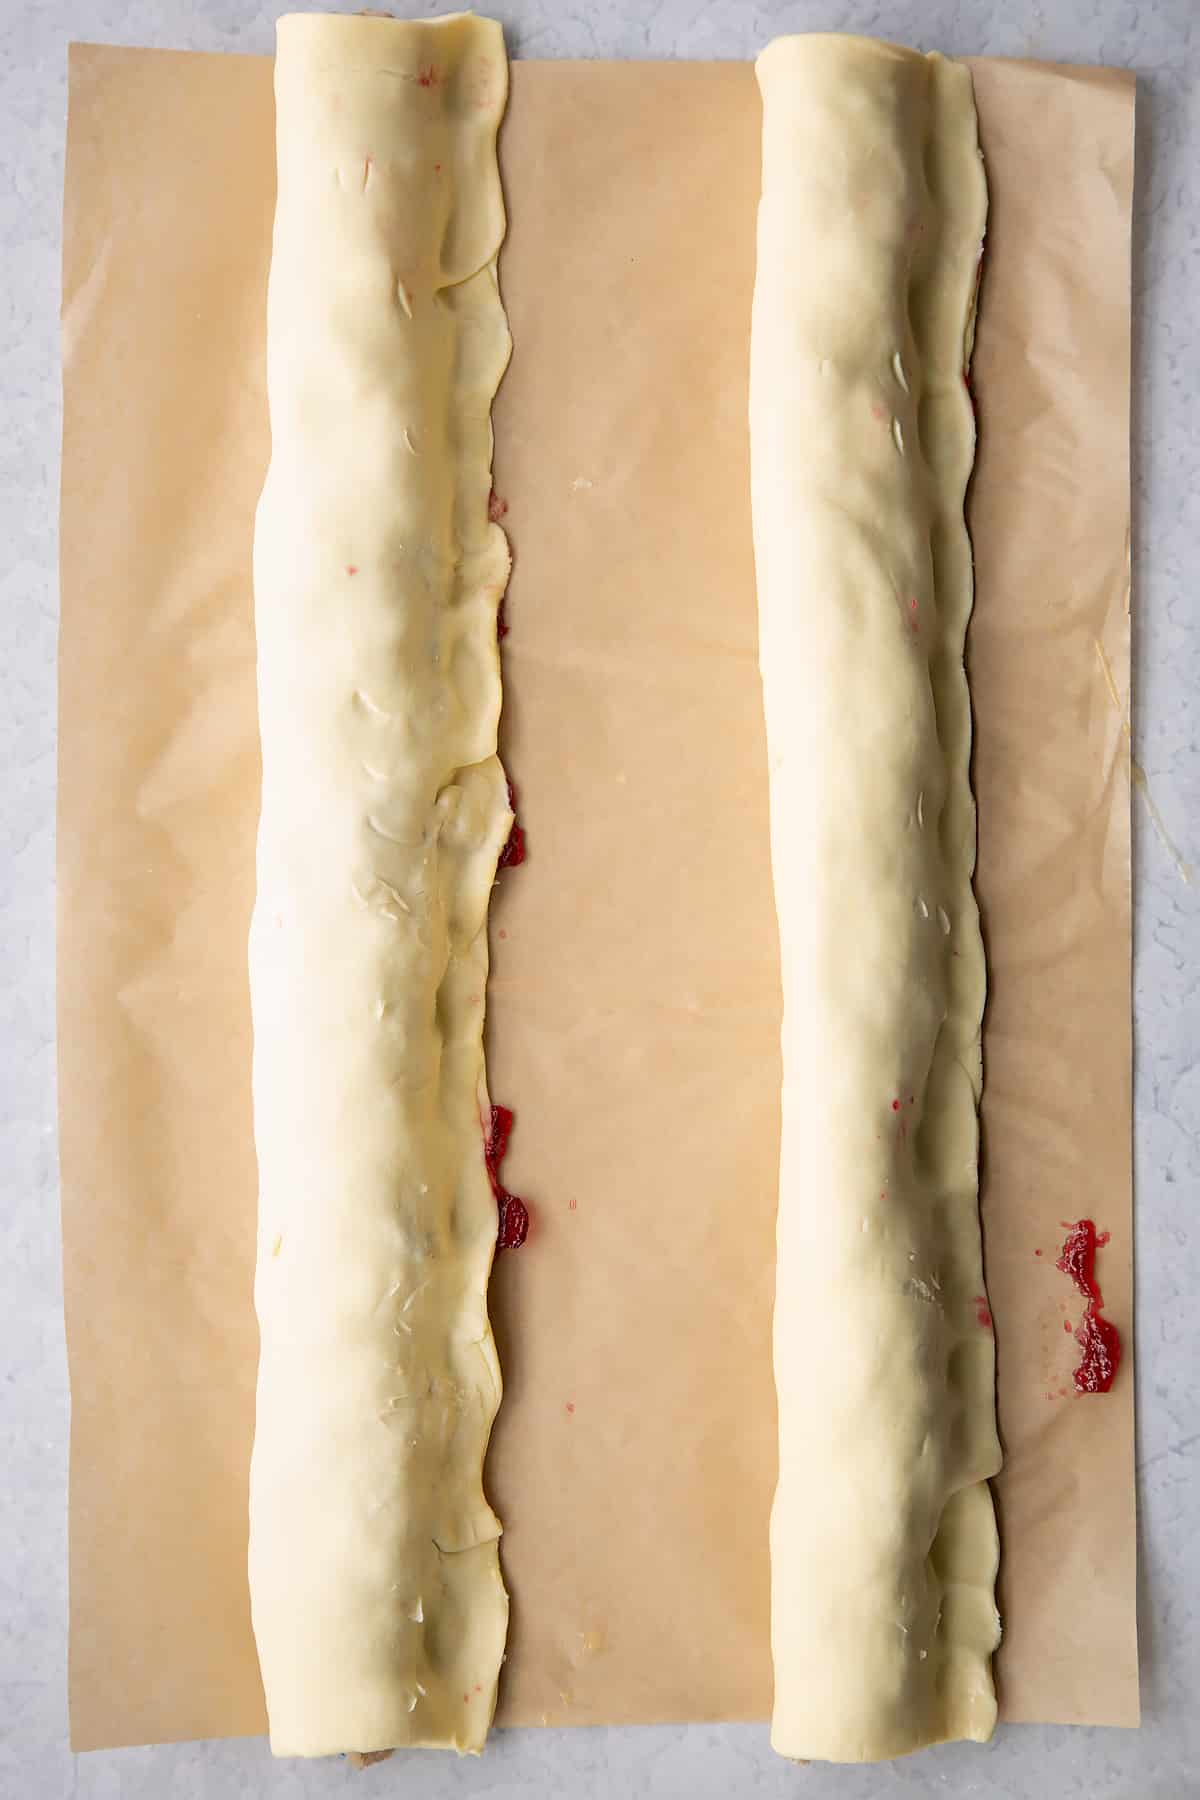 Two lengths of puff pastry wrapped around two lengths of festive sausage meat.